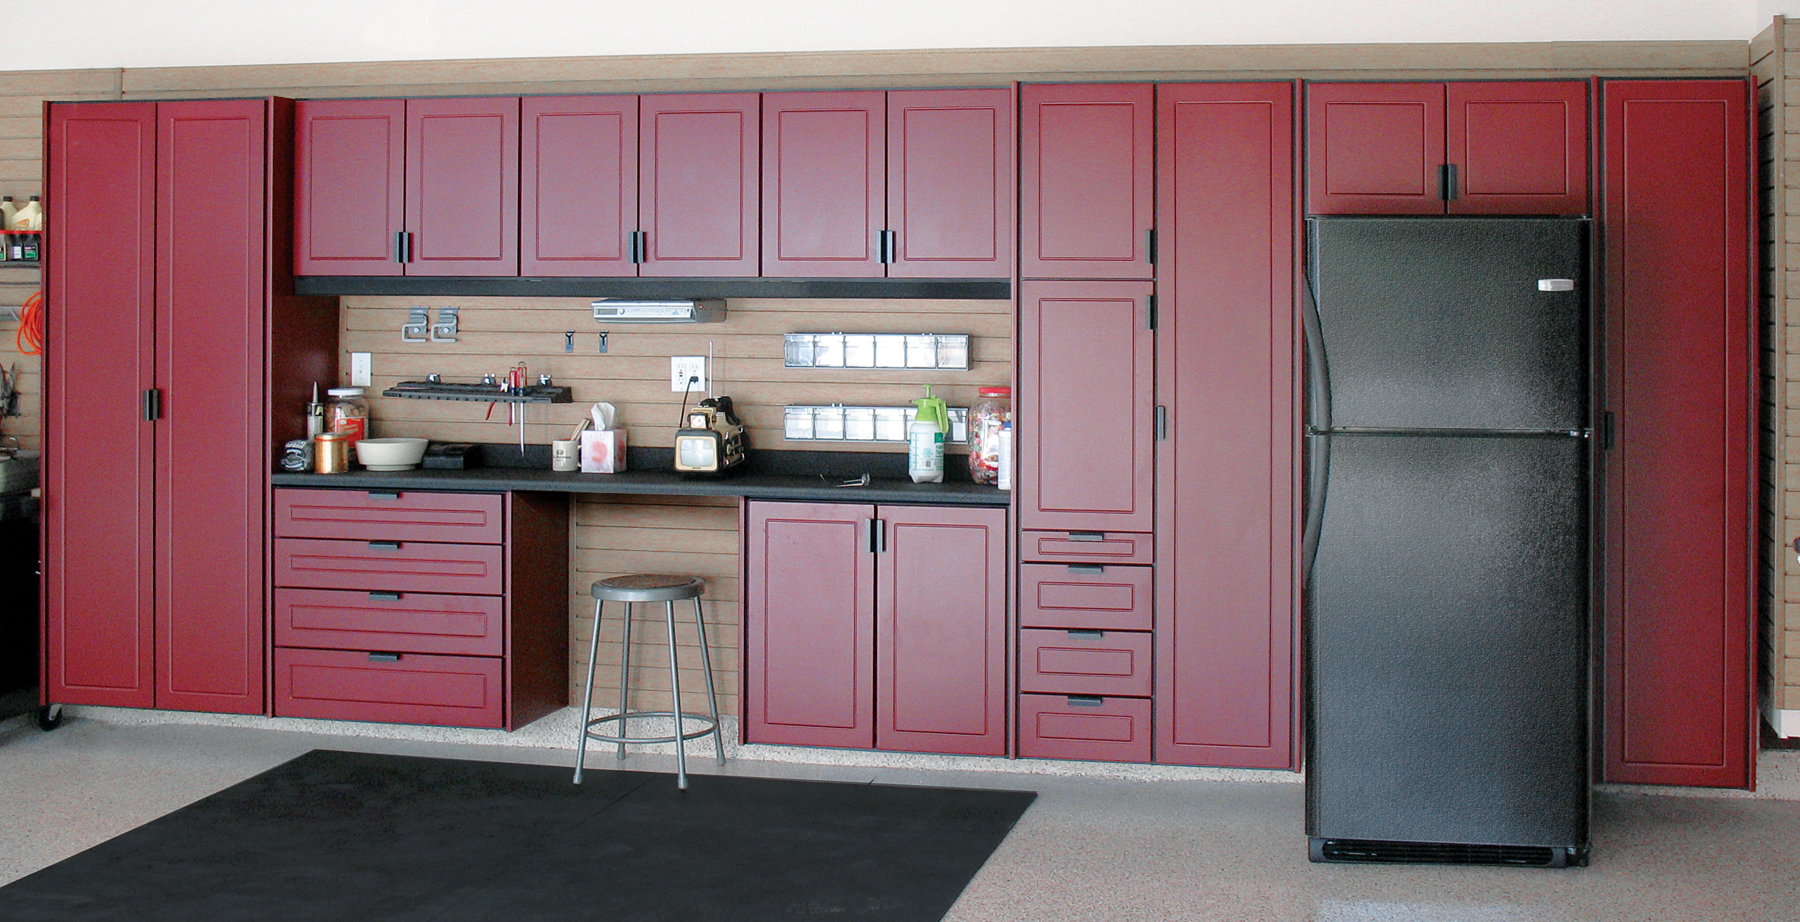 diy garage cabinets to make your garage look cooler elly. Black Bedroom Furniture Sets. Home Design Ideas